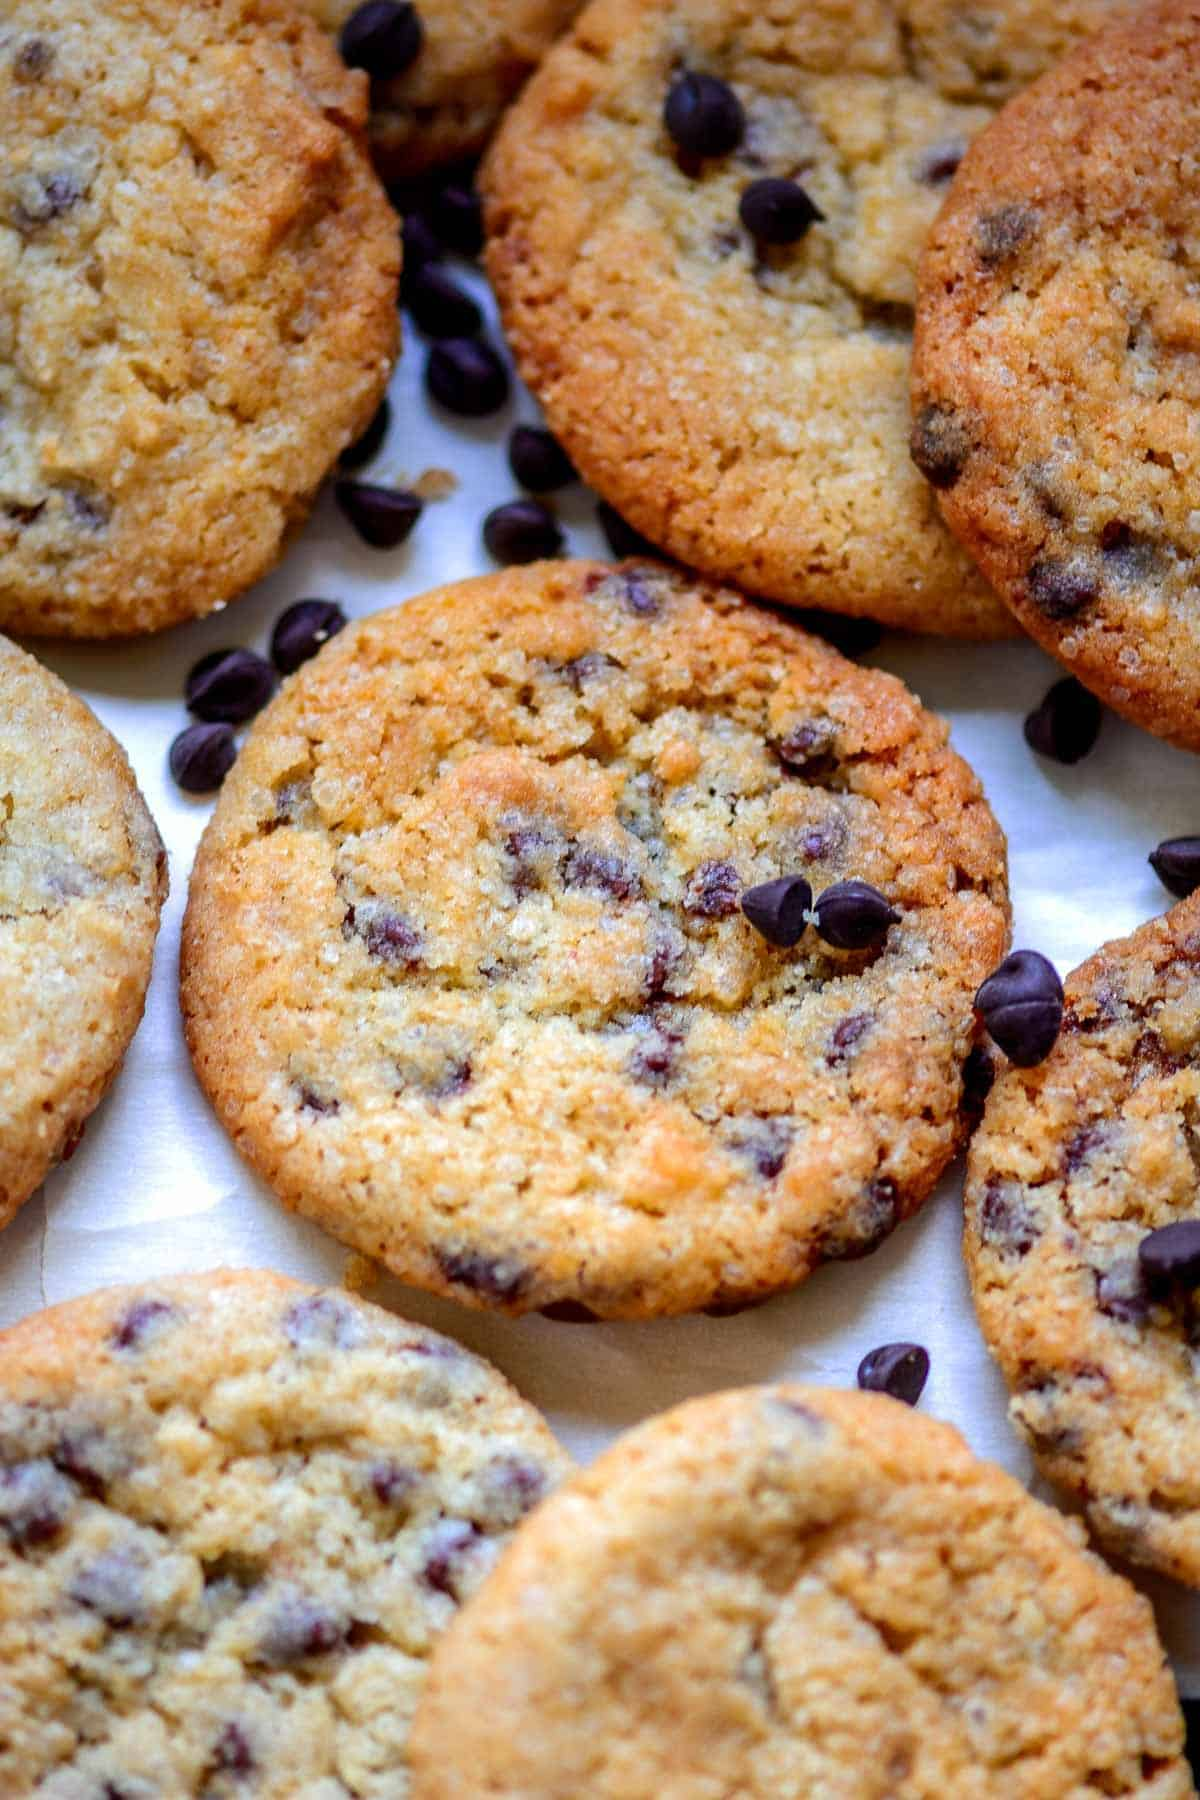 Eggless Chocolate Chip Cookies served on a plate.